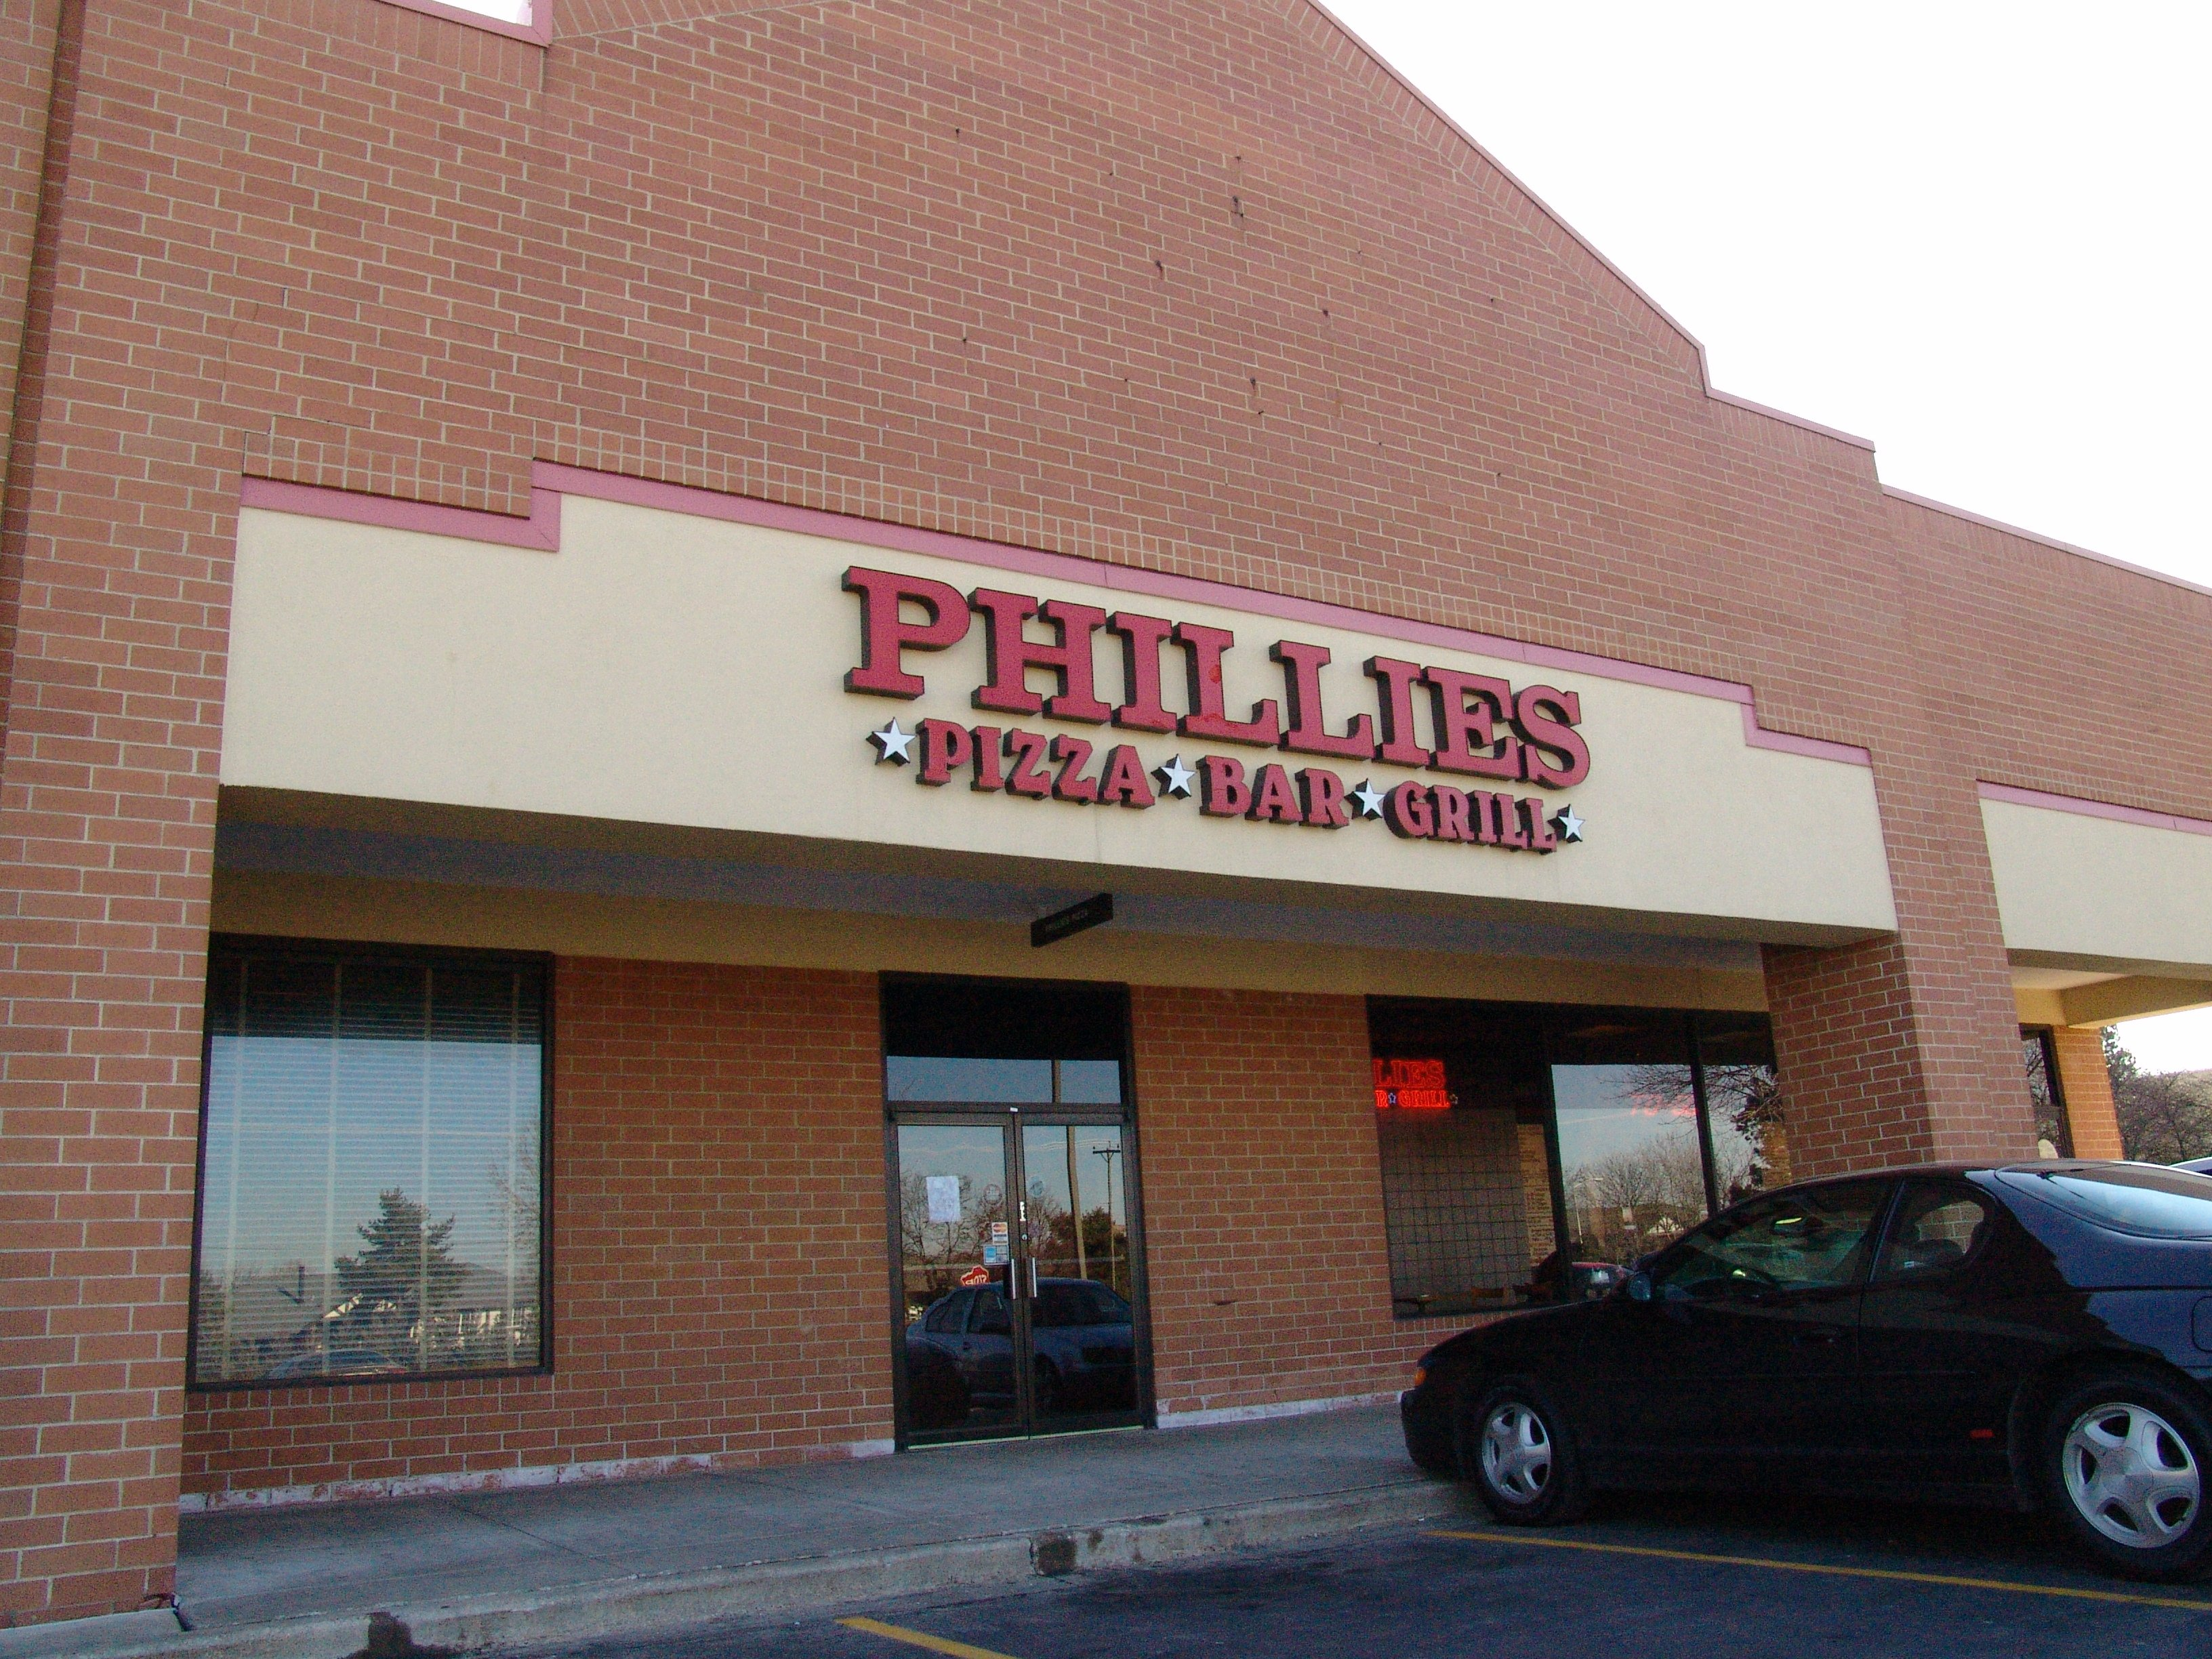 Phillies Pizza Bar & Grill - Willowbrook, IL